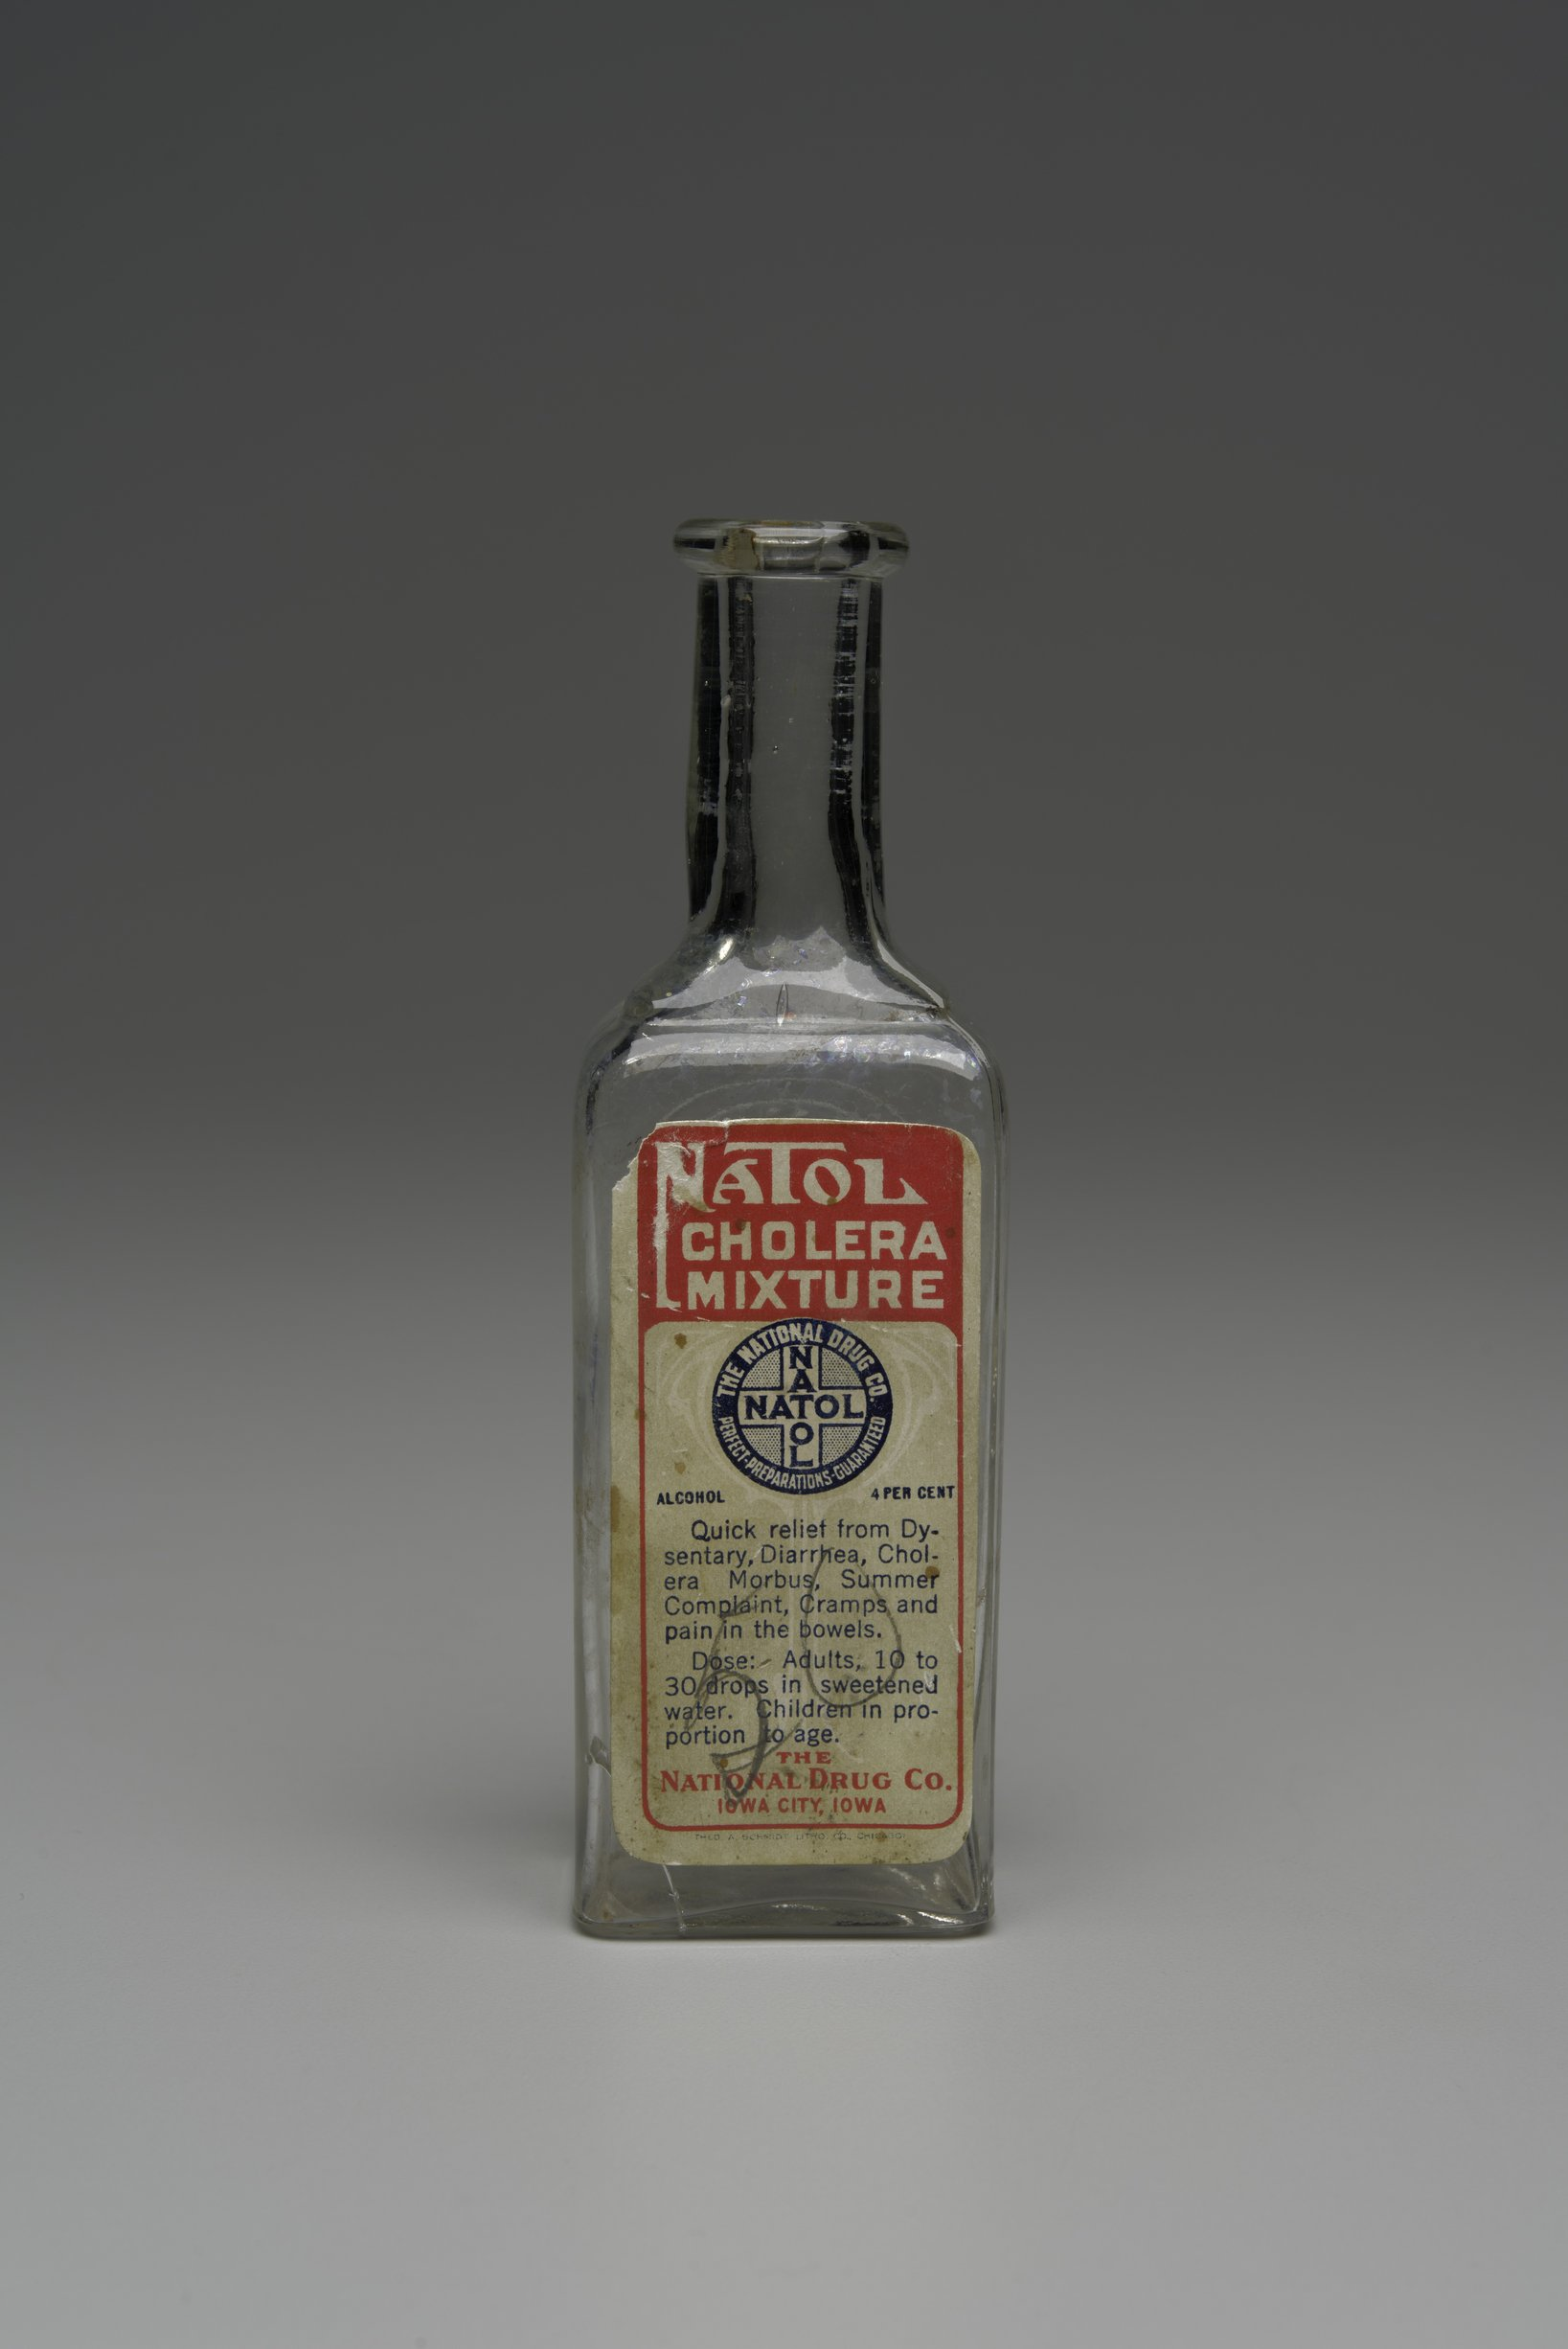 Natol Cholera Mixture Bottle from the Fort Dodge Grocery, 14FD315 - 1